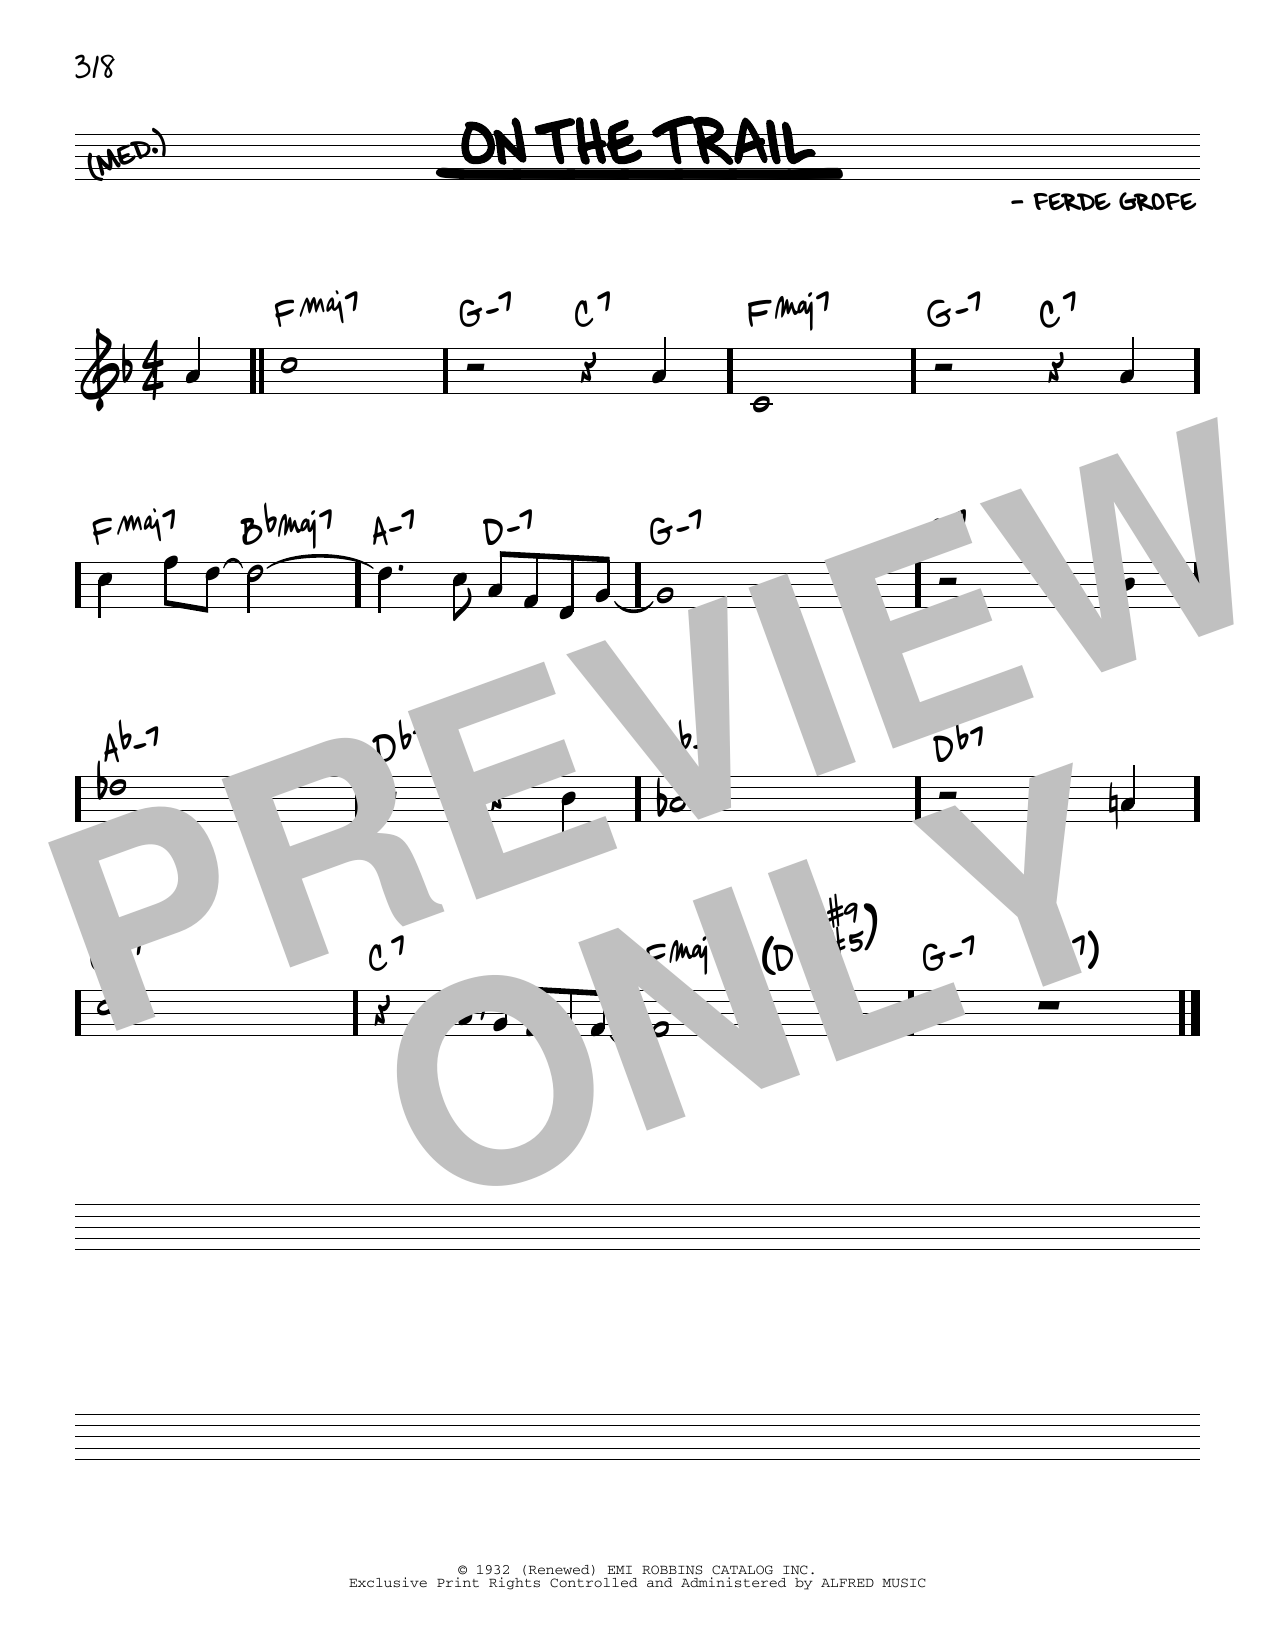 Ferde Grofe On The Trail sheet music notes and chords. Download Printable PDF.